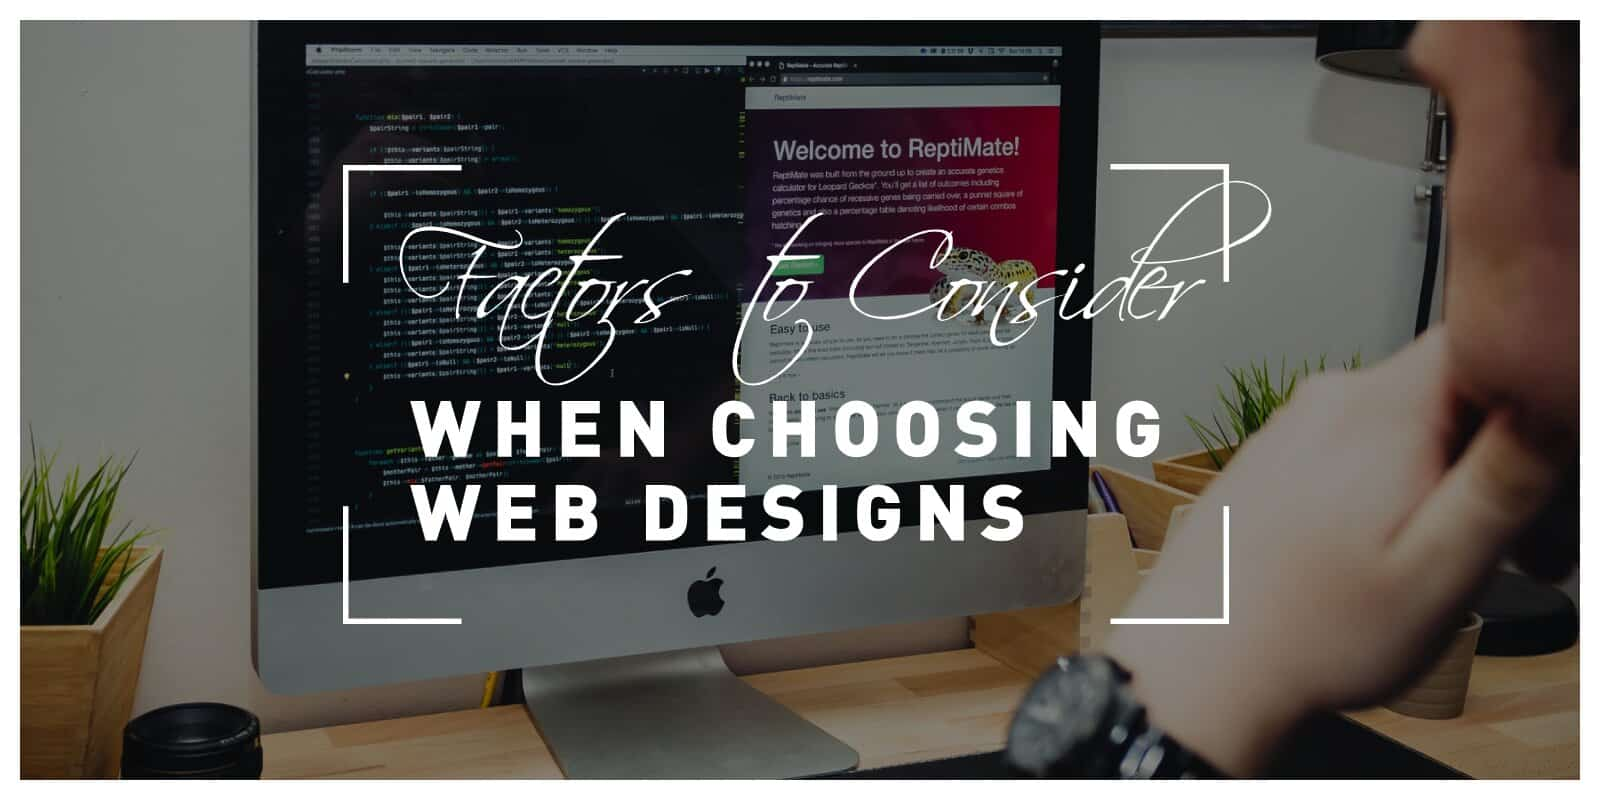 5 Factors to Consider When Choosing Designs for Websites